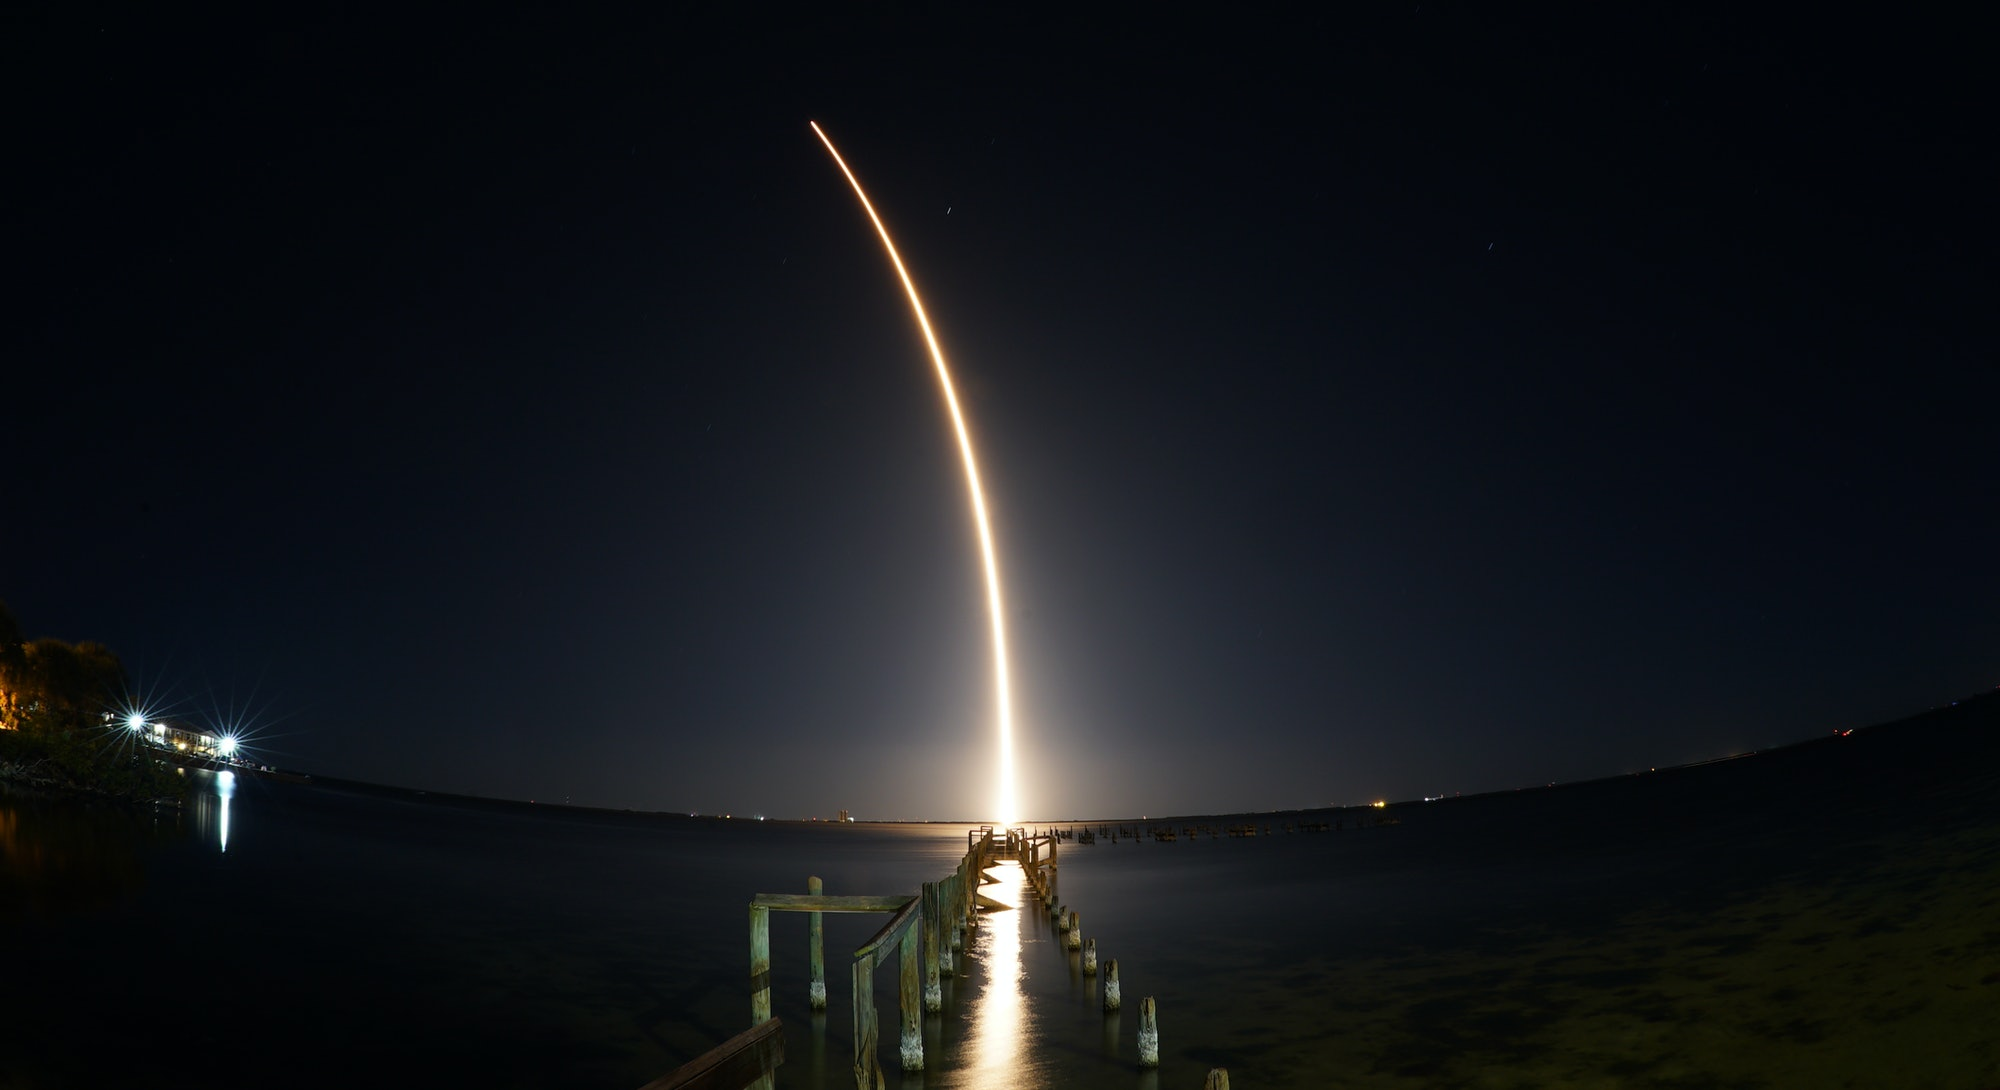 SpaceX rocket launch at night seen from Titusville, FL with destroyed dock in foreground